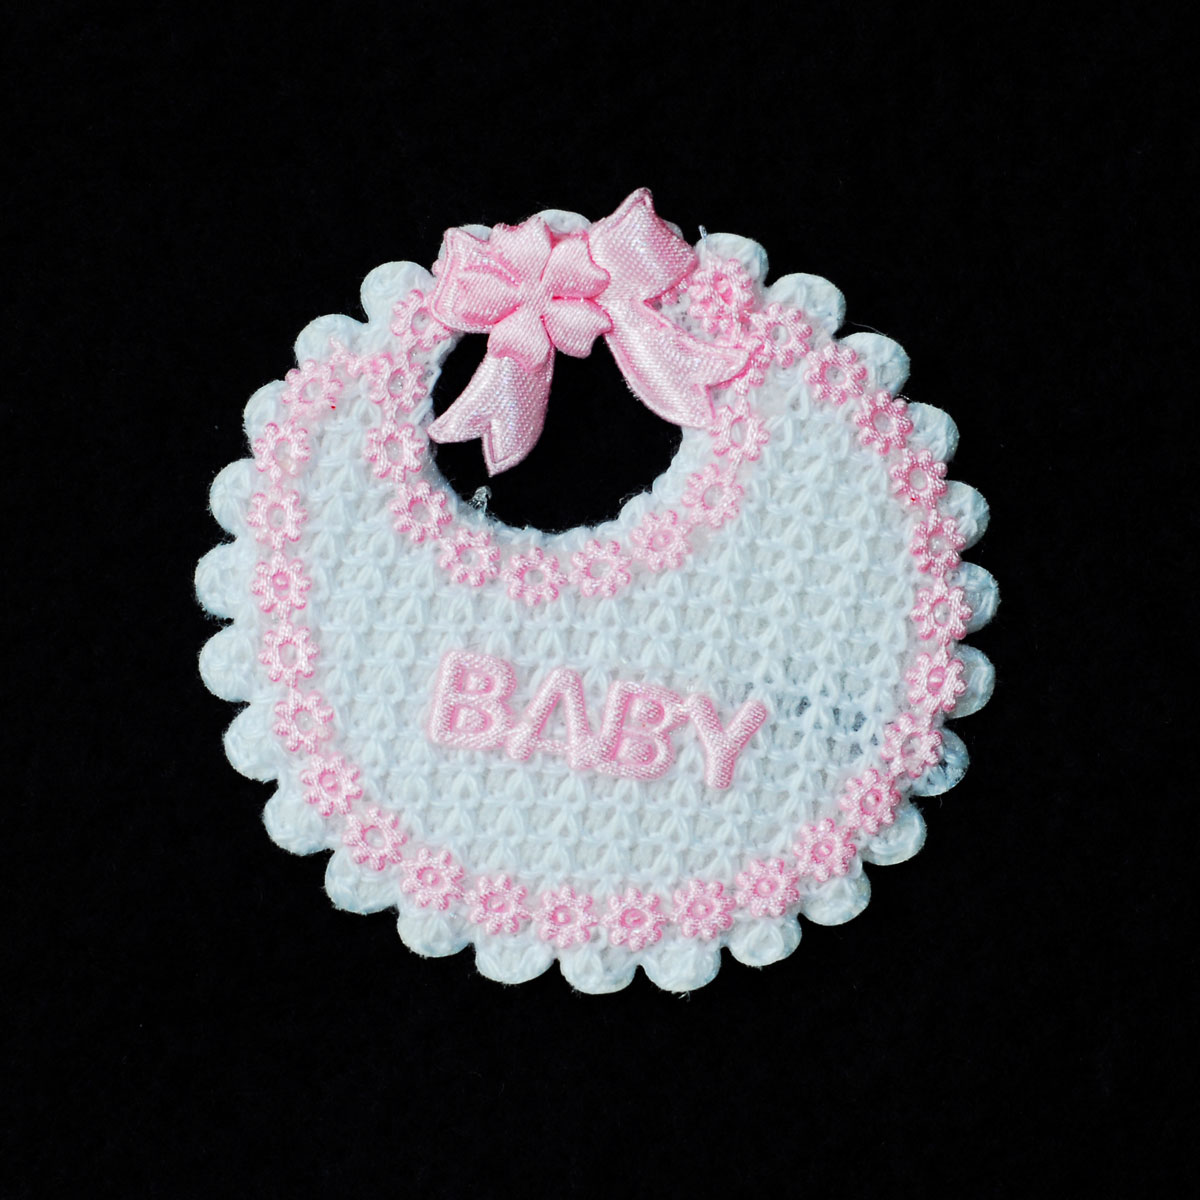 Decorate Baby Bibs Ifavor123com Baby Bib Cloth Favor For Baby Shower Decoration